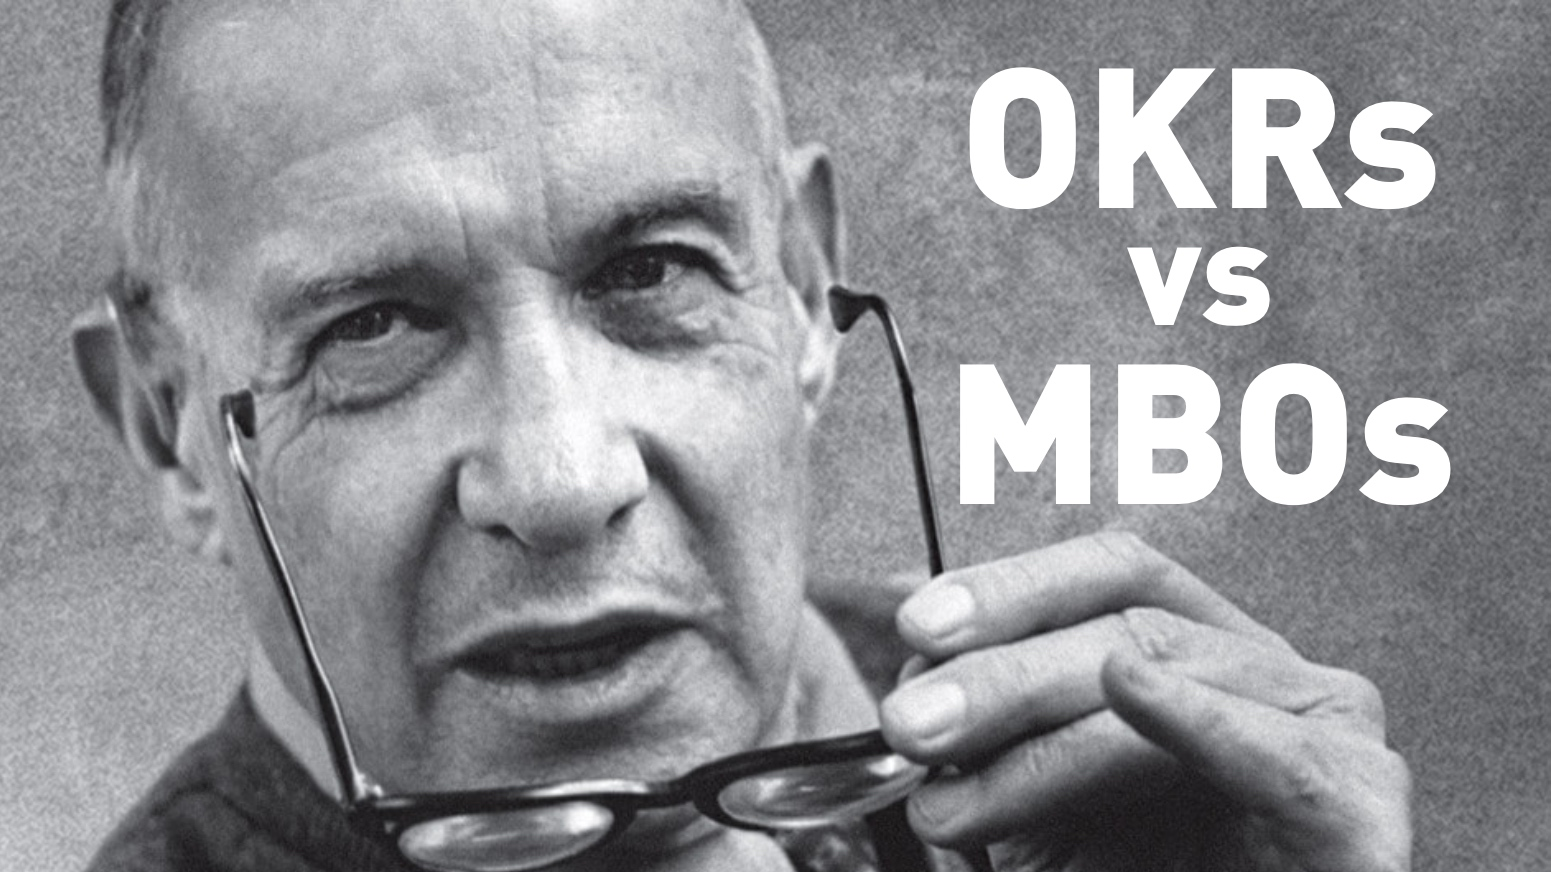 Peter Drucker MBOs vs OKRs